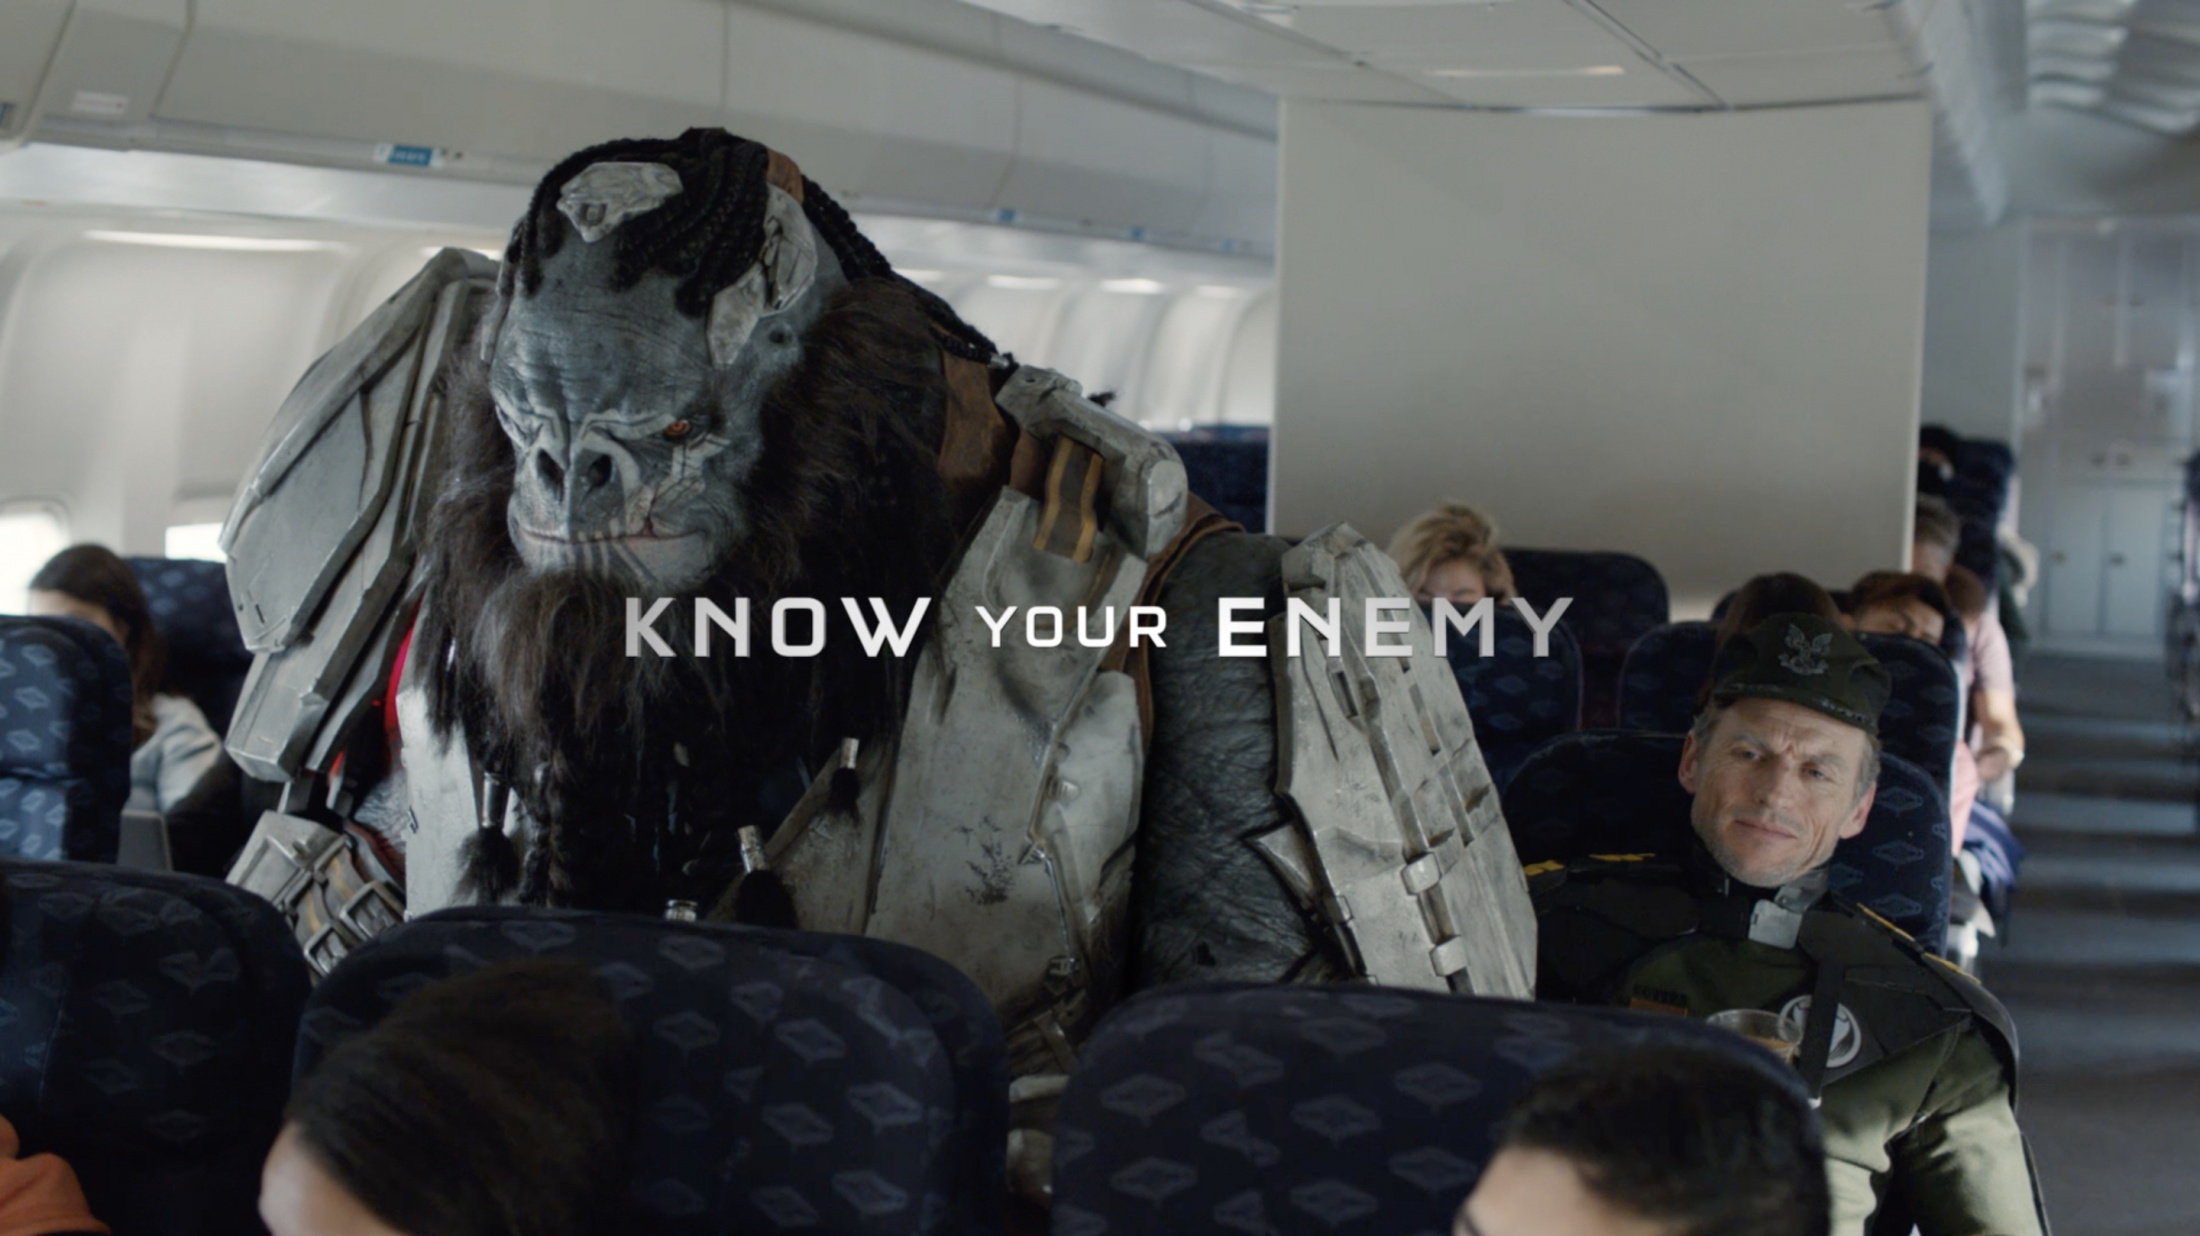 Thumbnail for Know Your Enemy